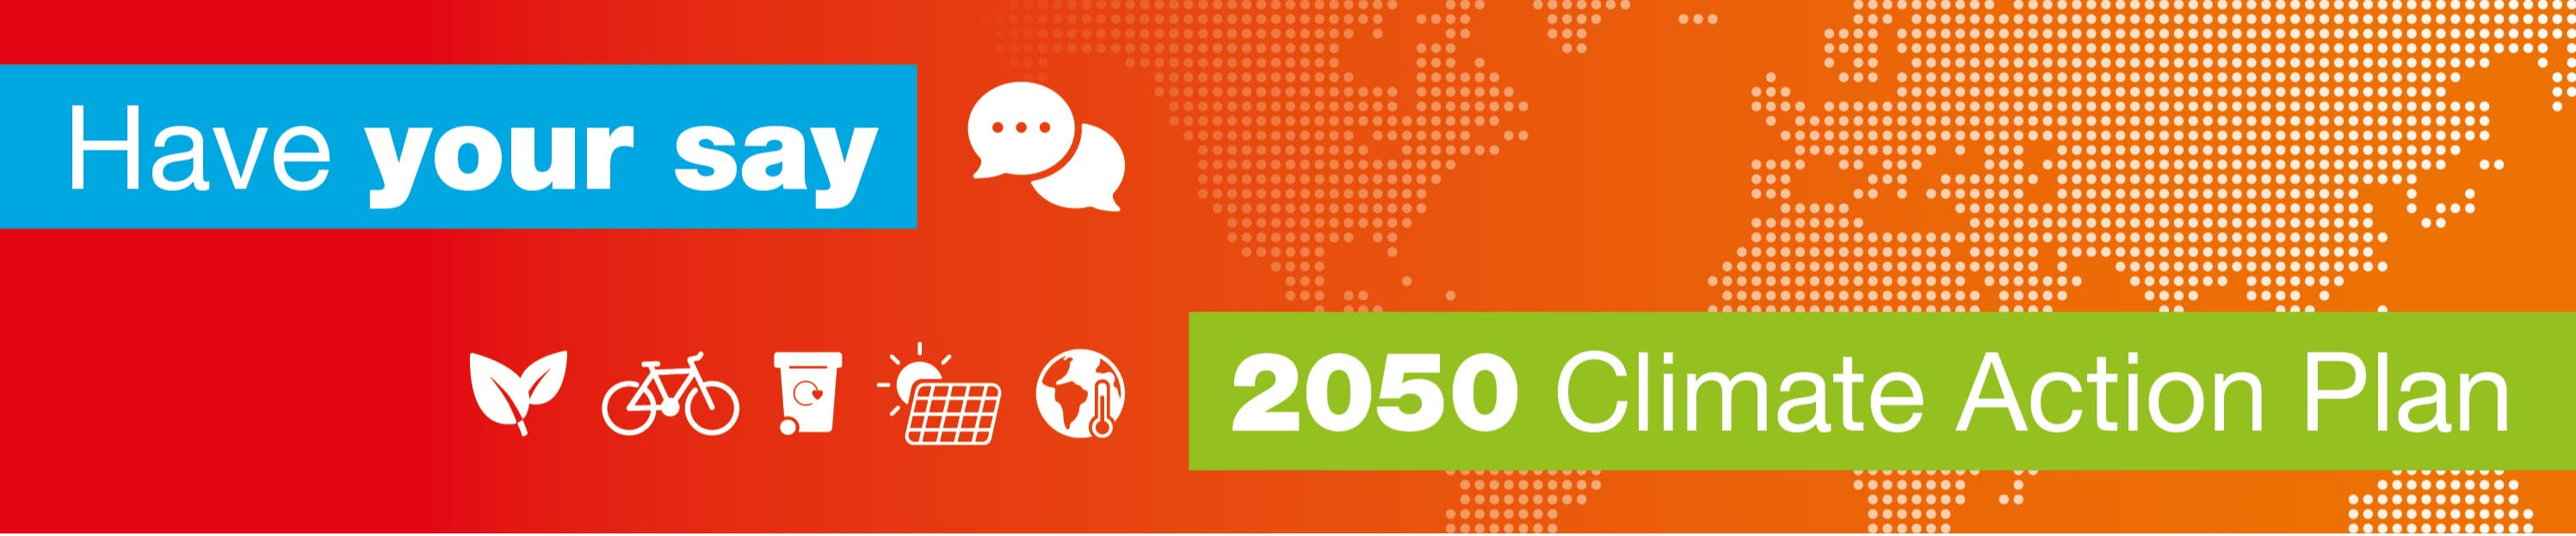 Have your say on our 2050 Climate Action Plan